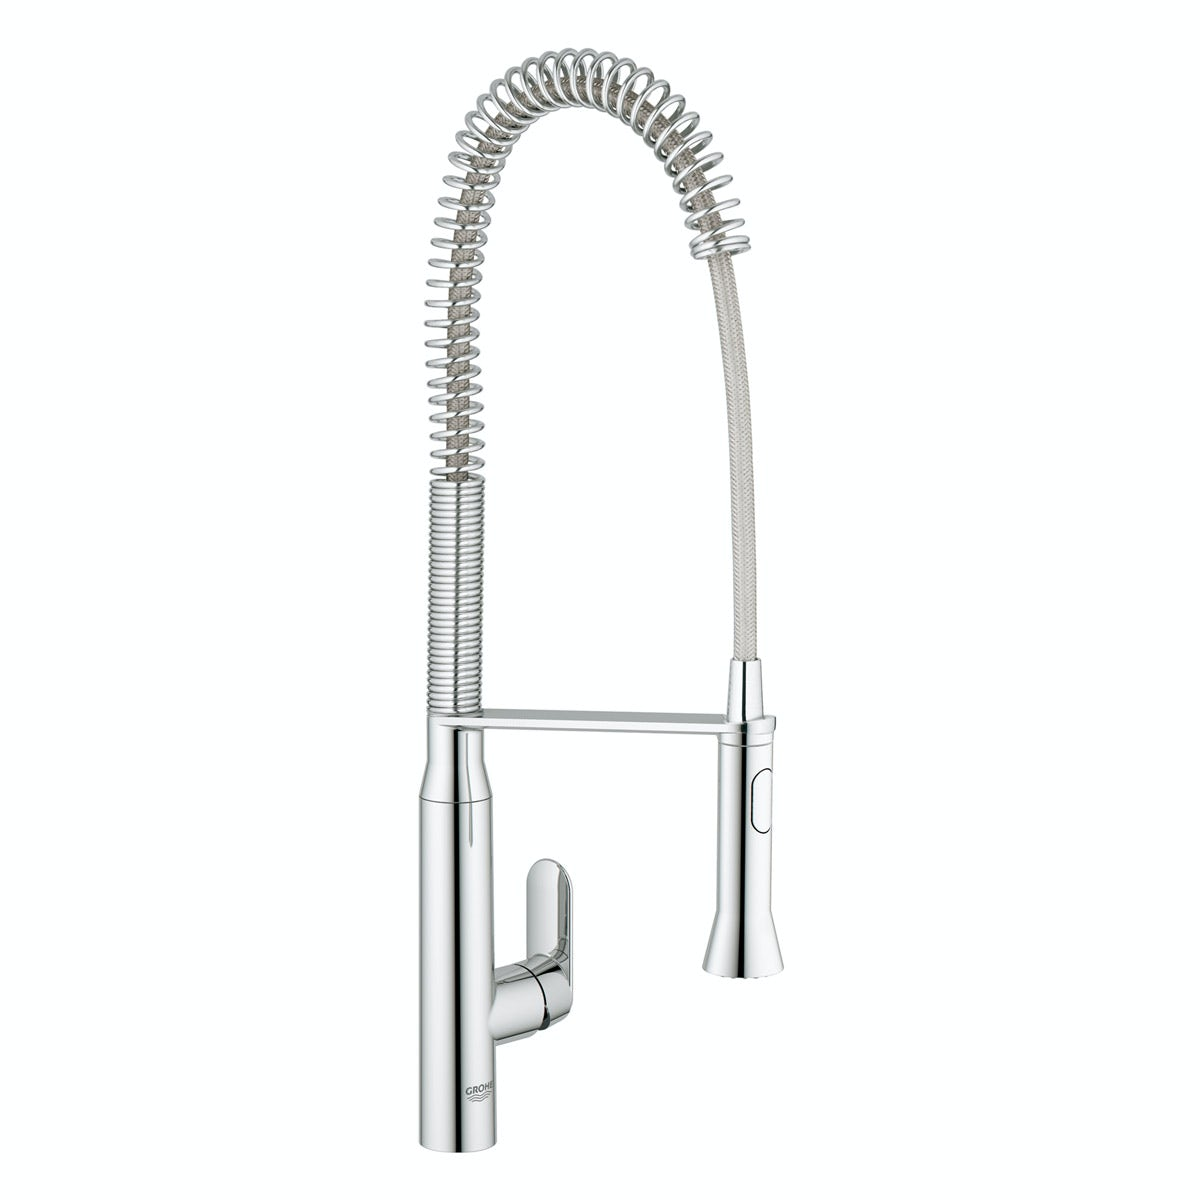 Grohe K7 Profi-spray kitchen tap with pull down spout